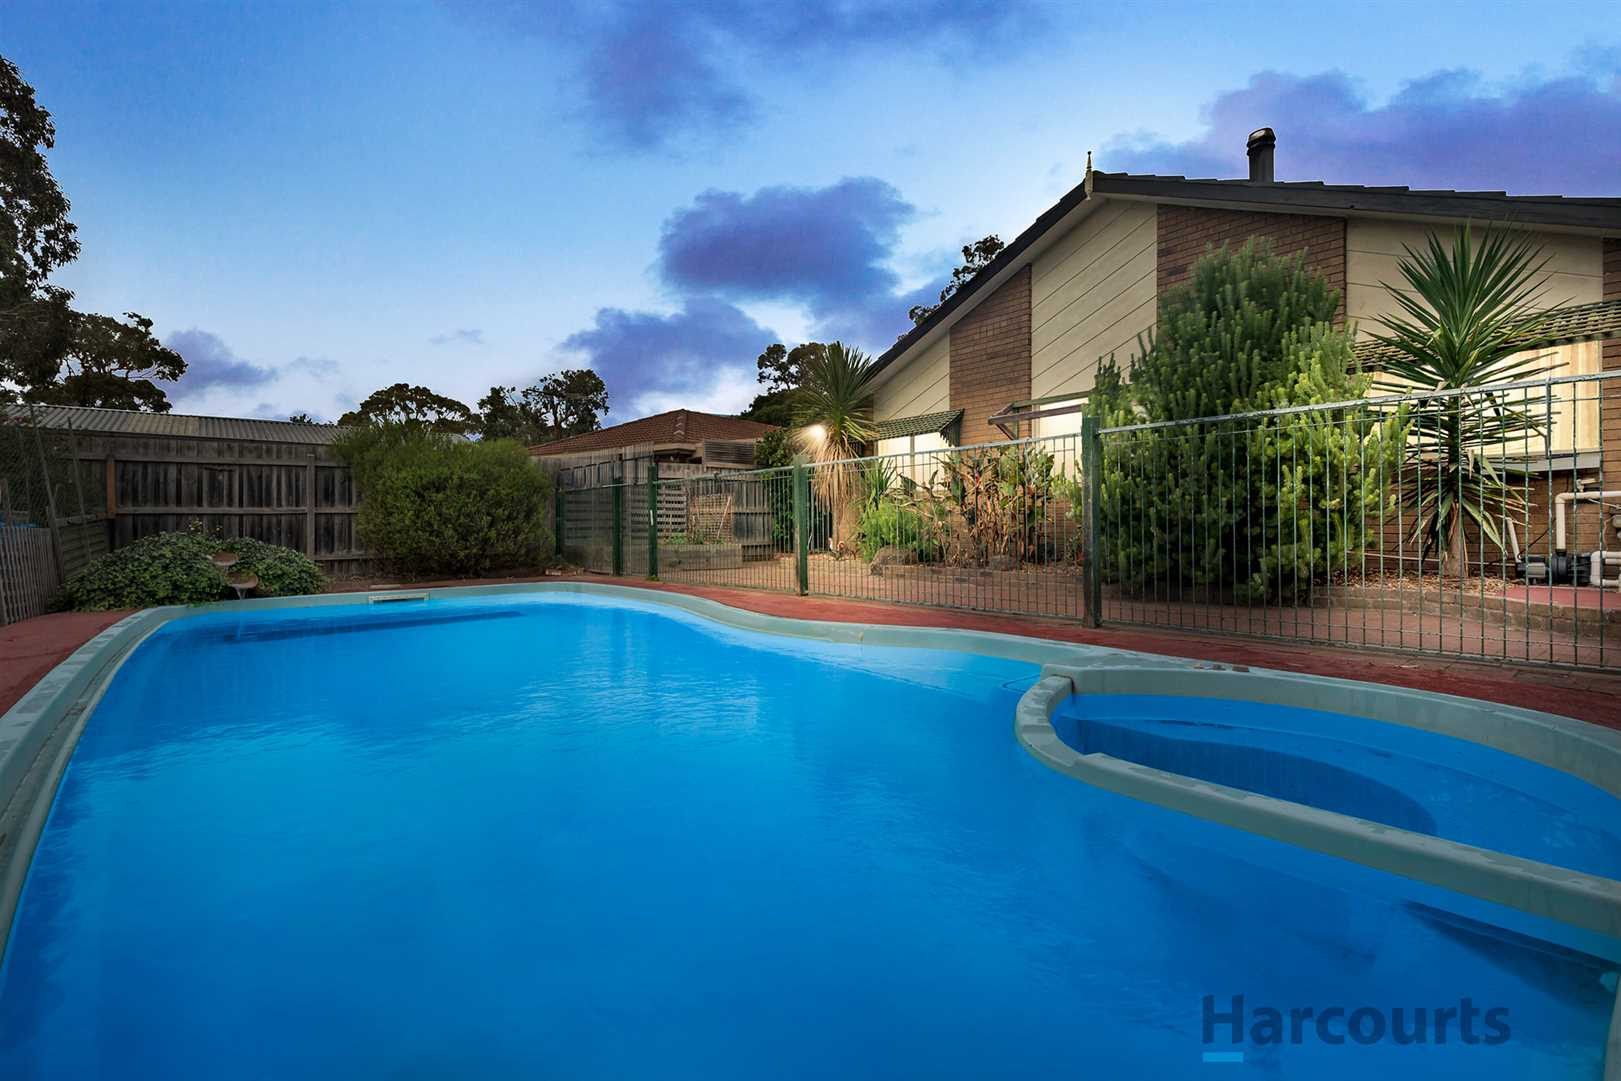 Are you looking for a large home with an inground pool?